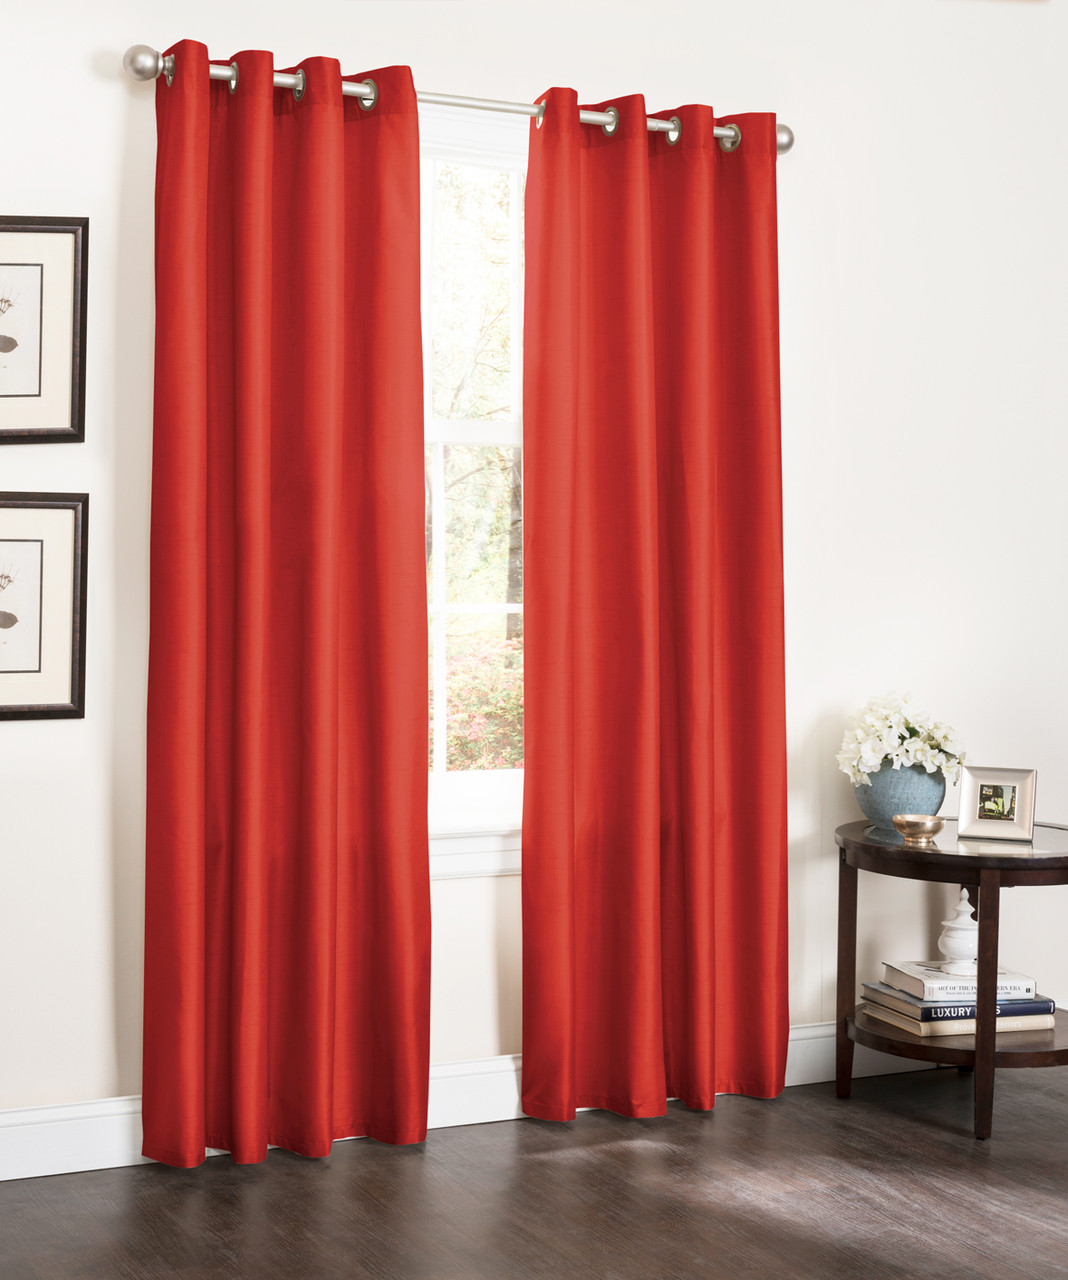 blackout patio curtain ebay insulated curtains panels barn itm sliding burgundy s thermal door